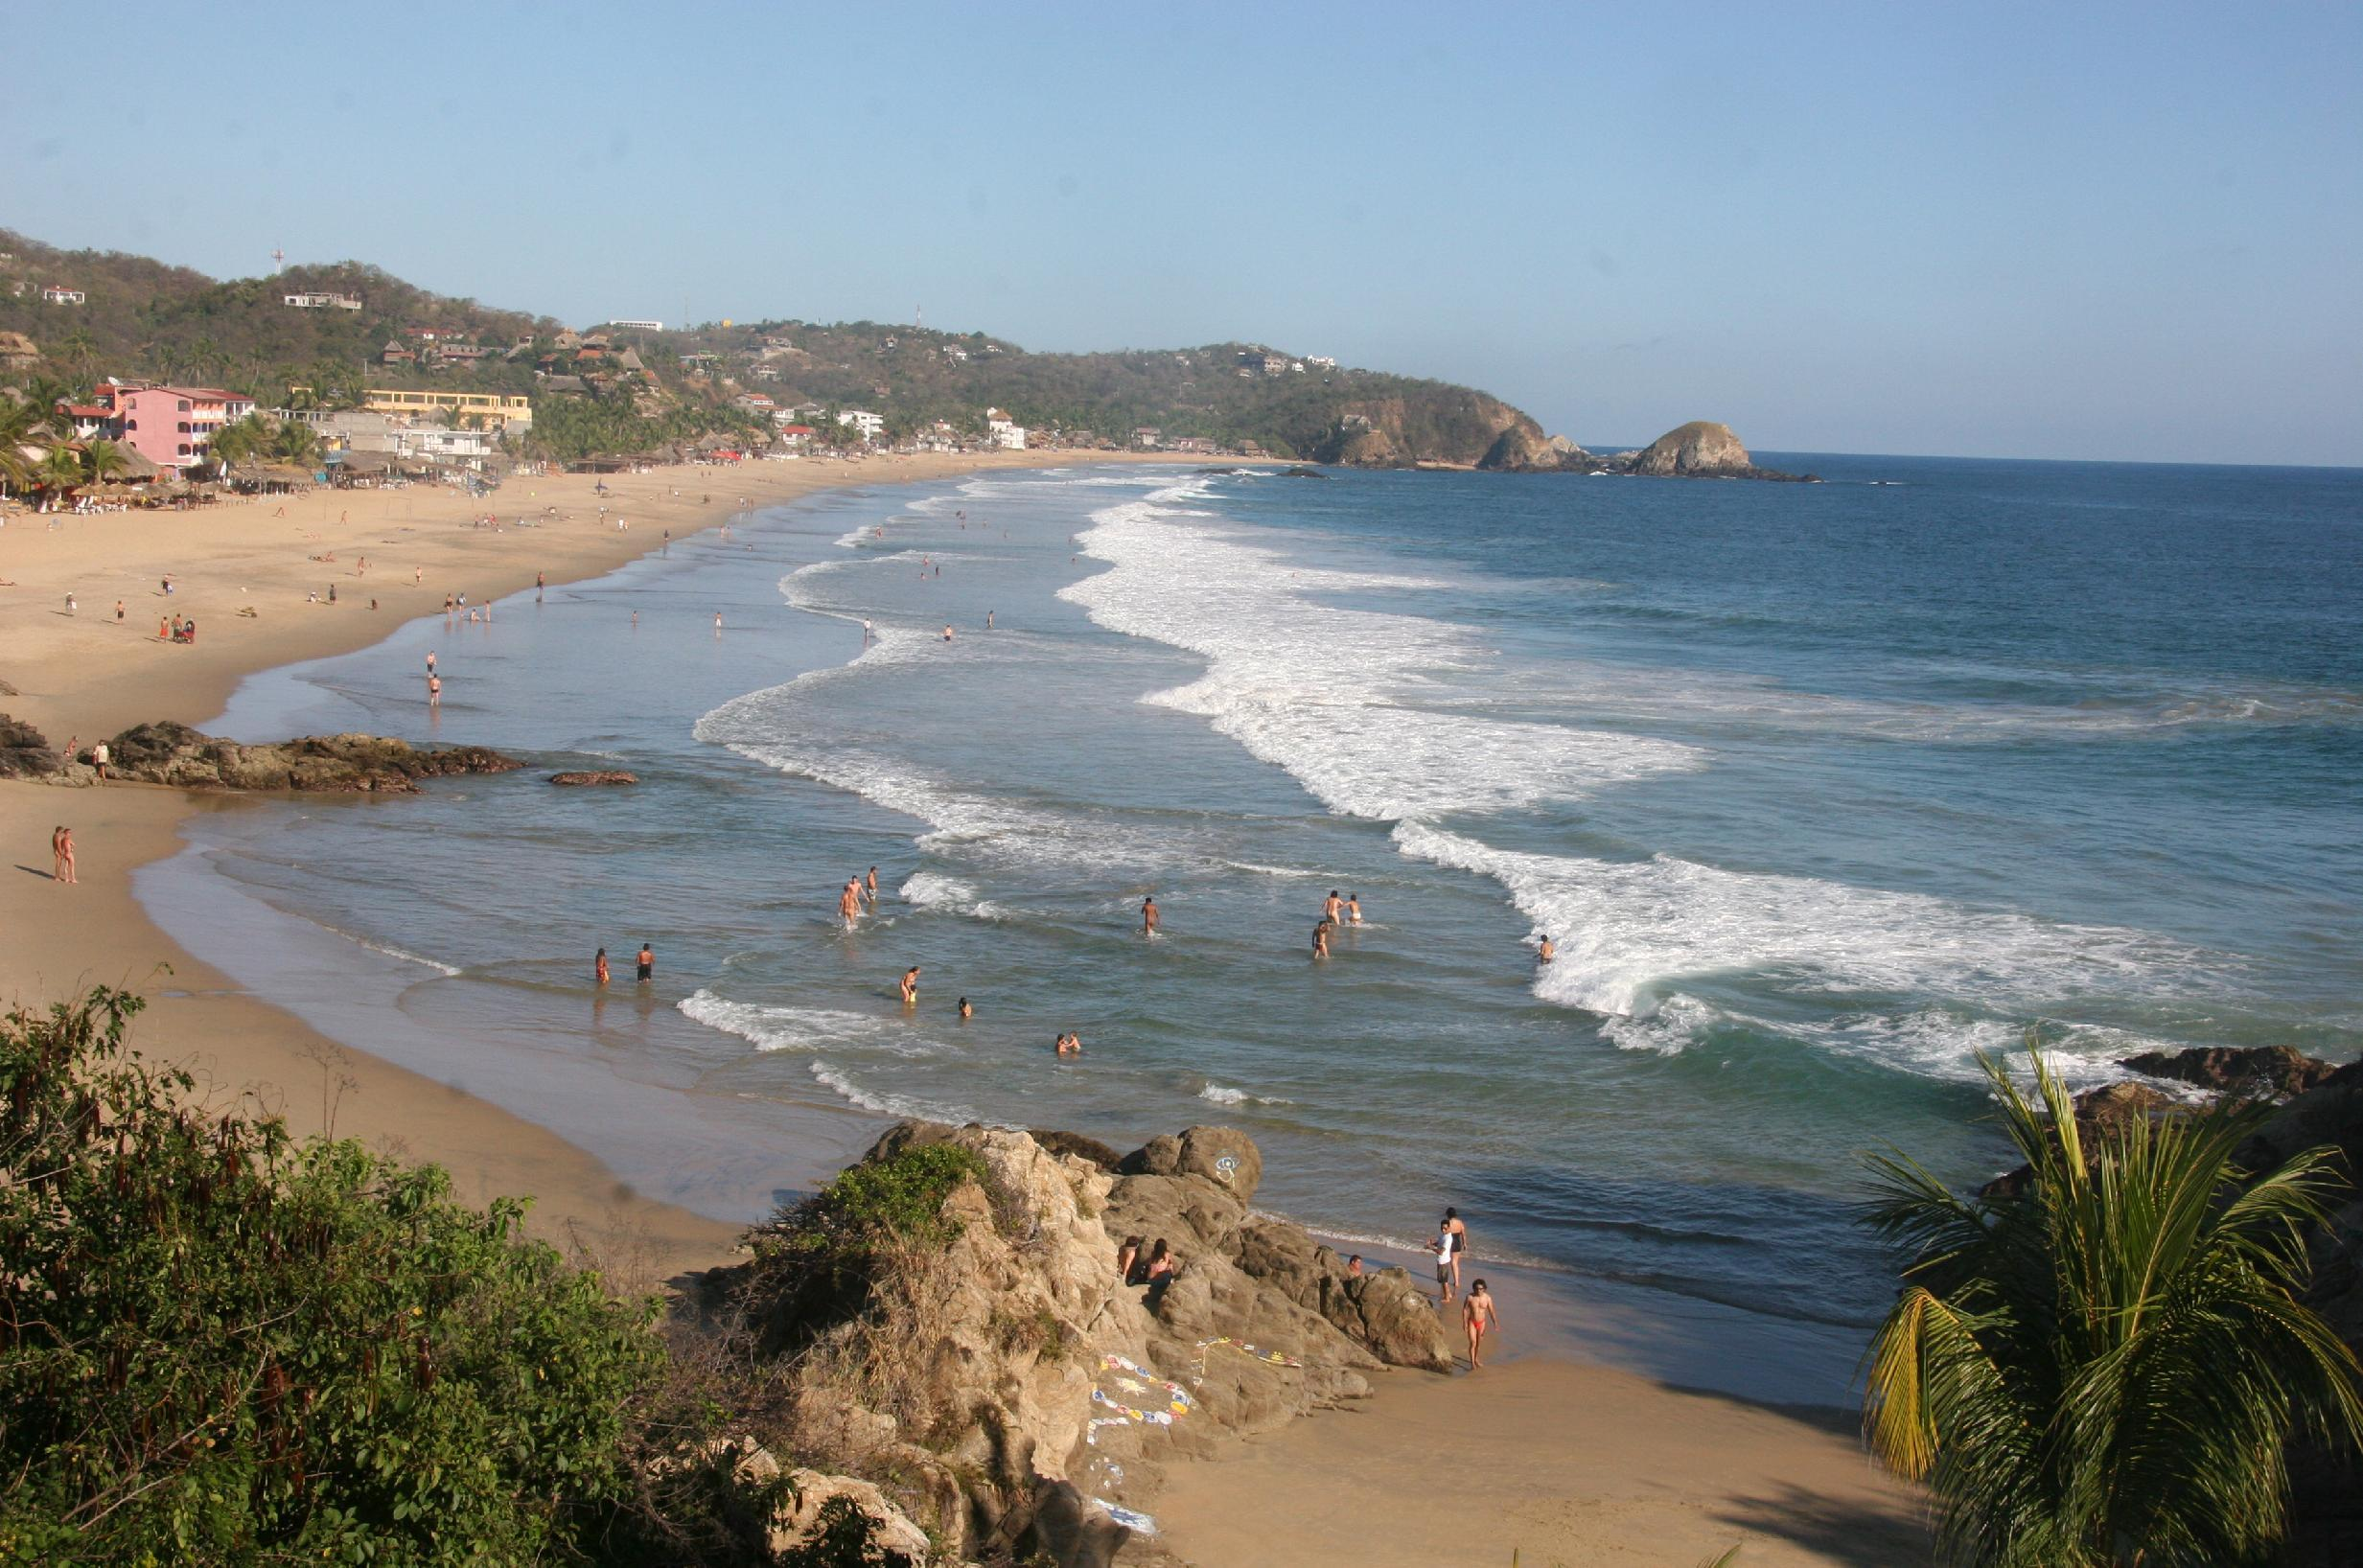 This Jan. 6, 2013 photo shows visitors bathing in the surf along the beach in Zipolite, Mexico. A sleepy town with one main street and no ATMs, Zipolite is one many tiny coastal pueblos that dot the Pacific in Mexico's Southern state of Oaxaca. (AP Photo/Jody Kurash)